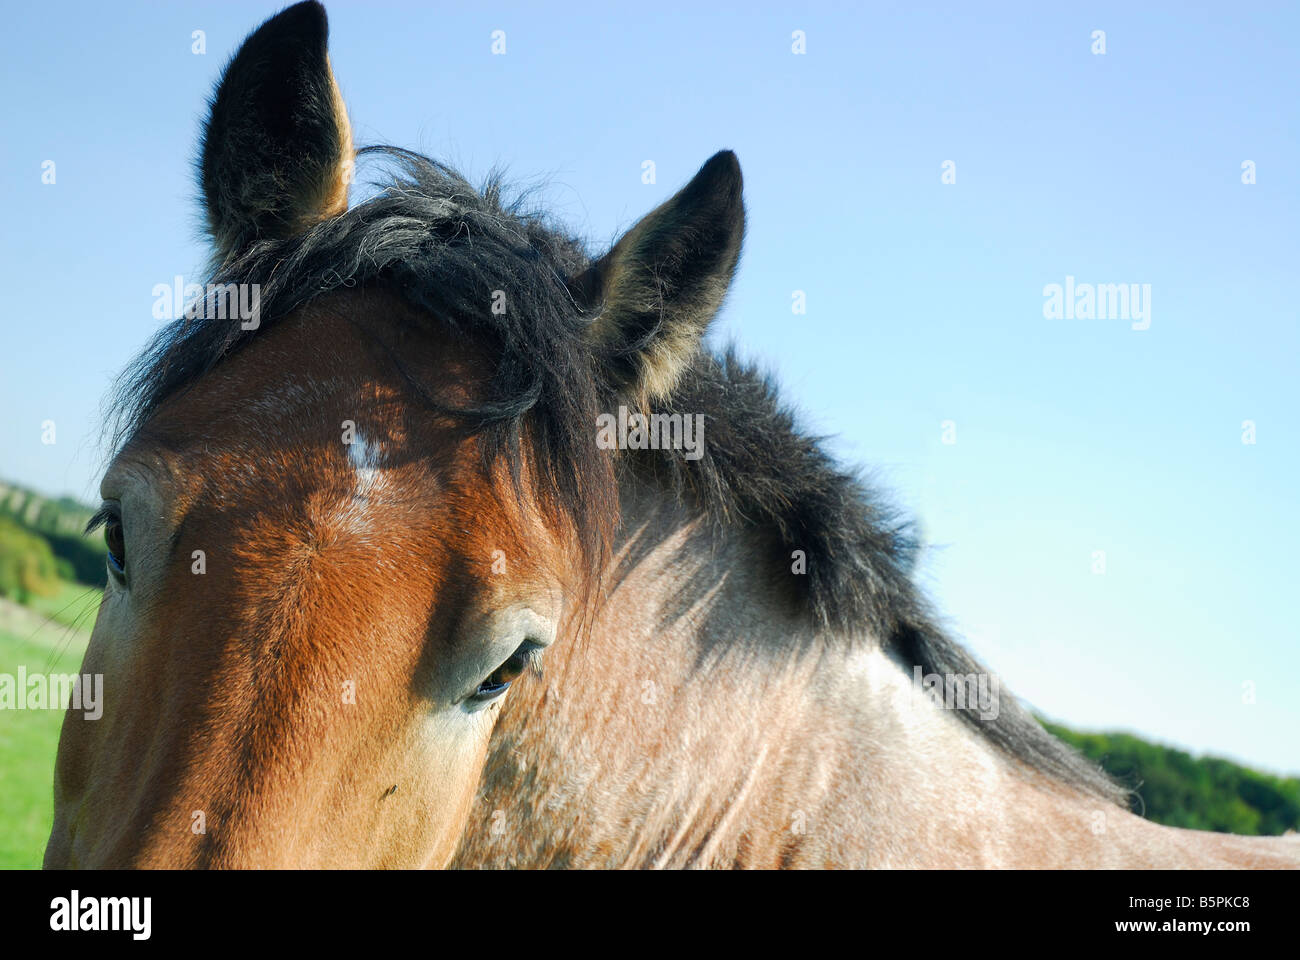 A brown draft horse portrait- Lorraine France - Stock Image